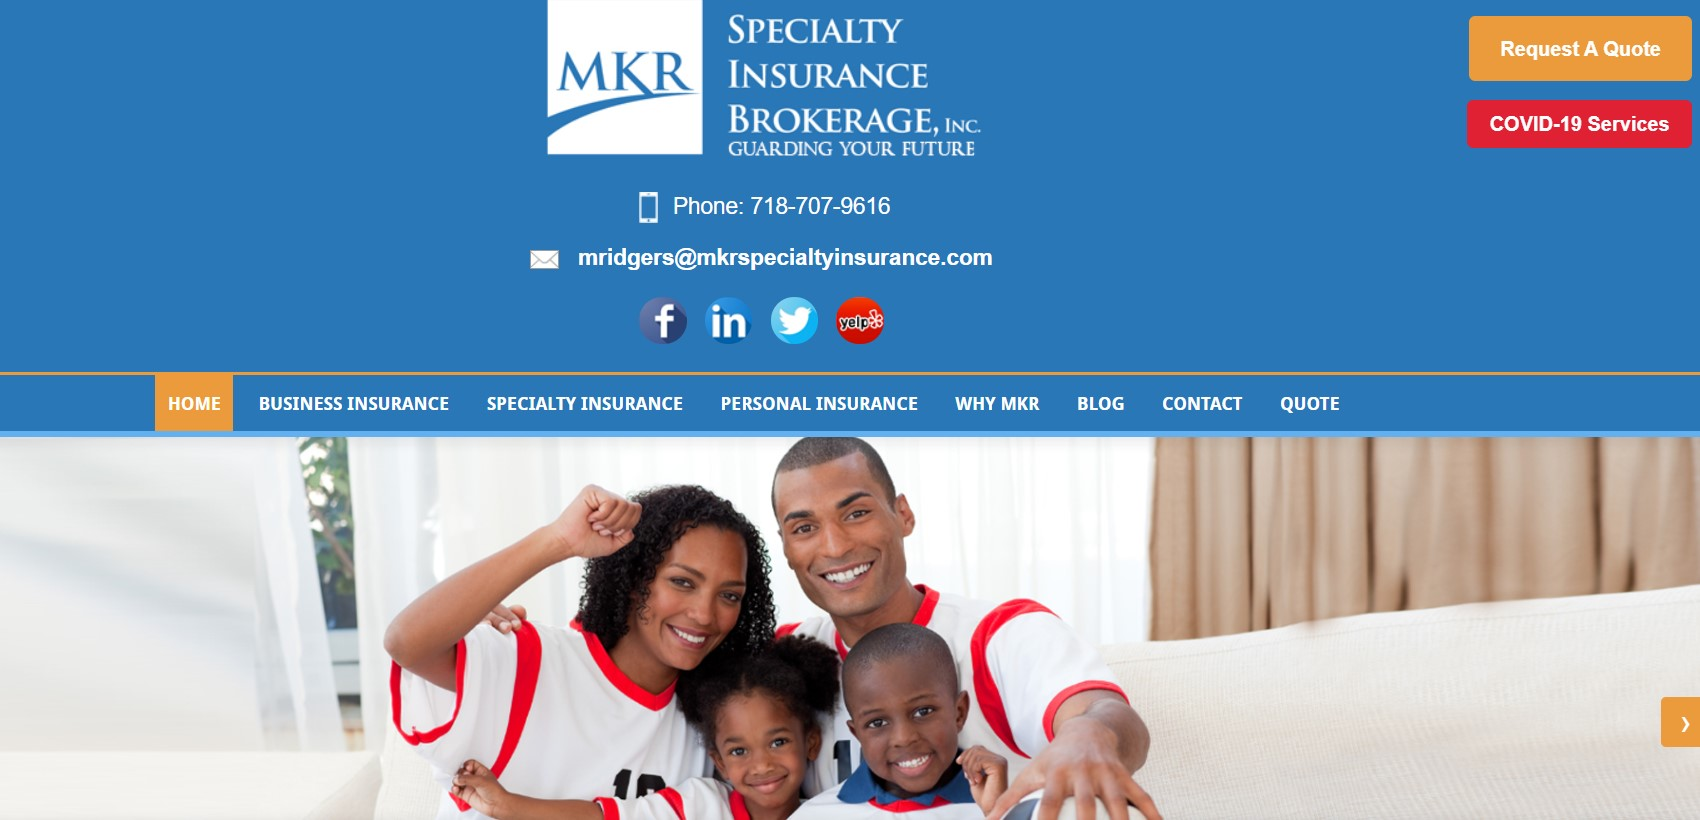 mkr insurance broker in new york